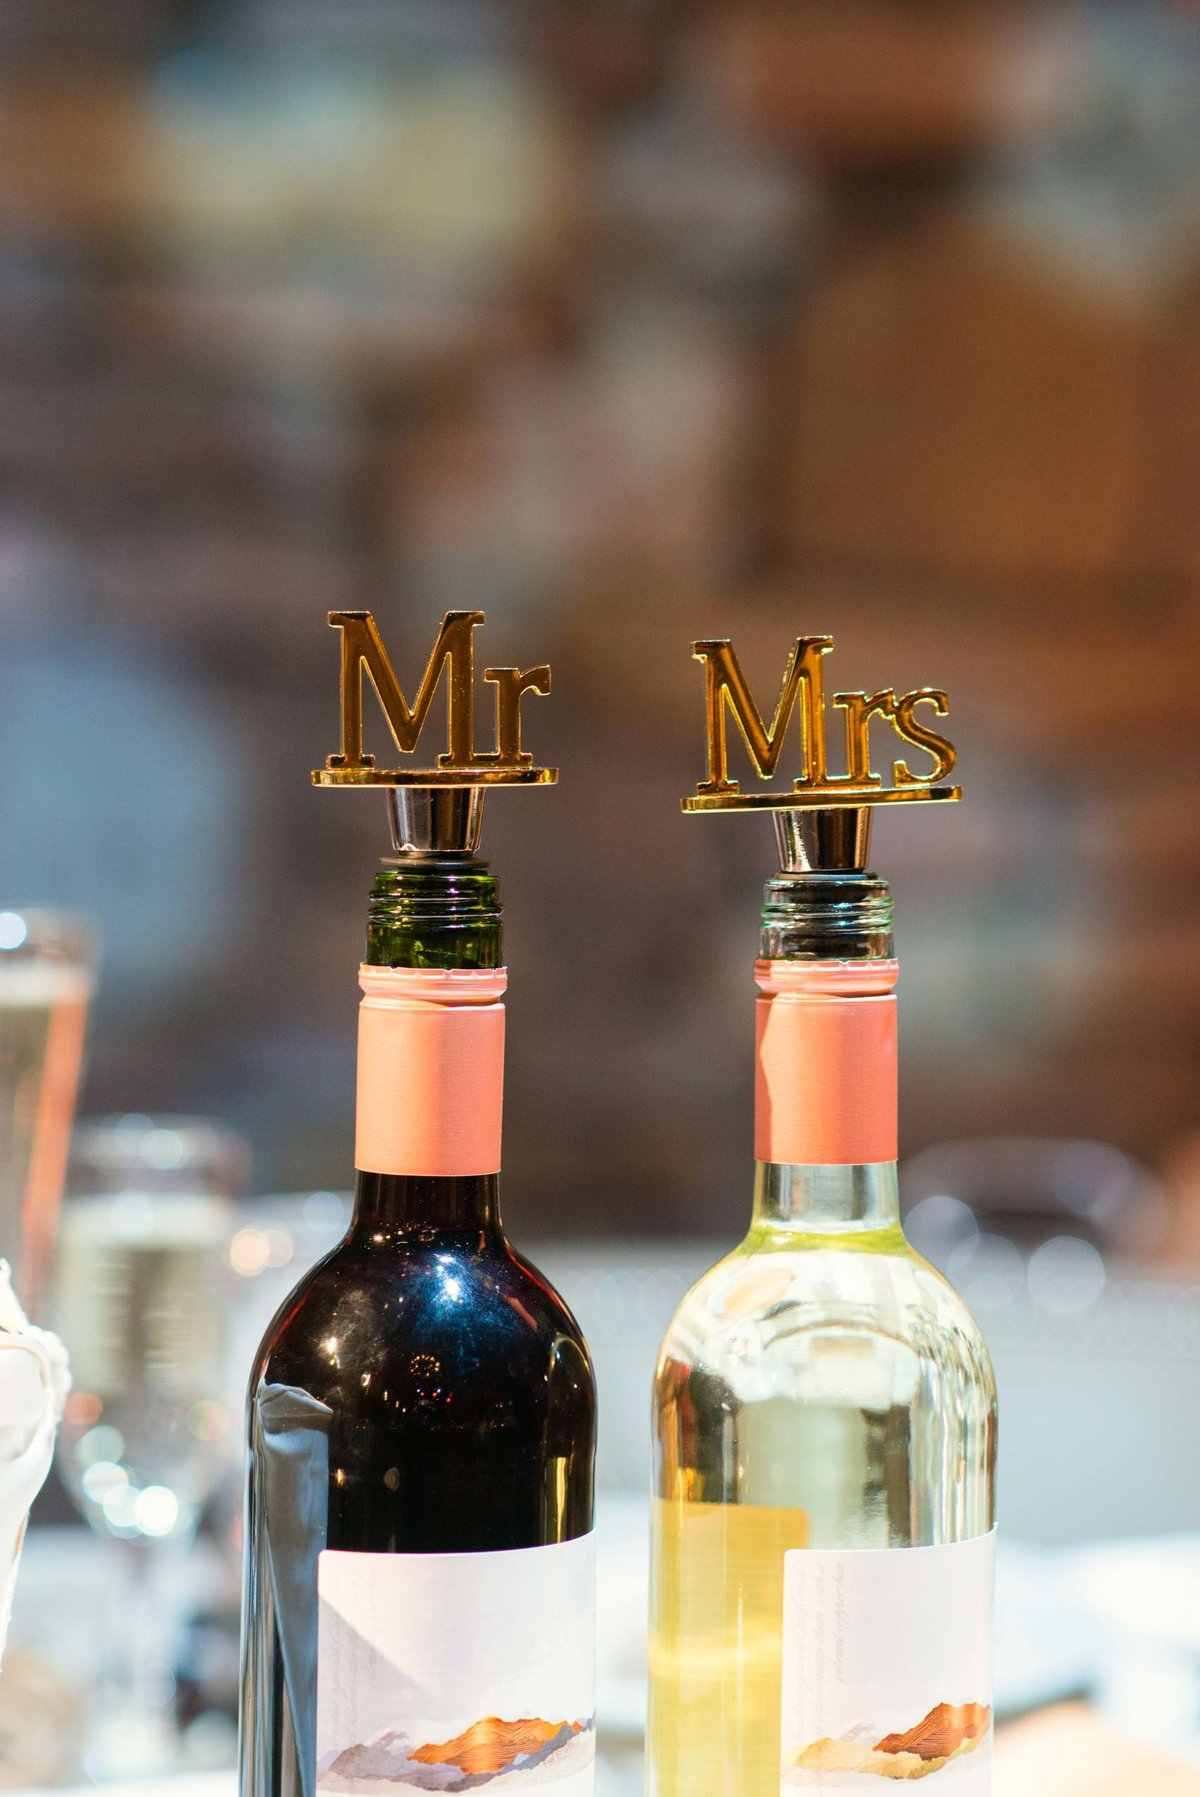 Mr and Mrs wine bottle stoppers at Fox Hollow